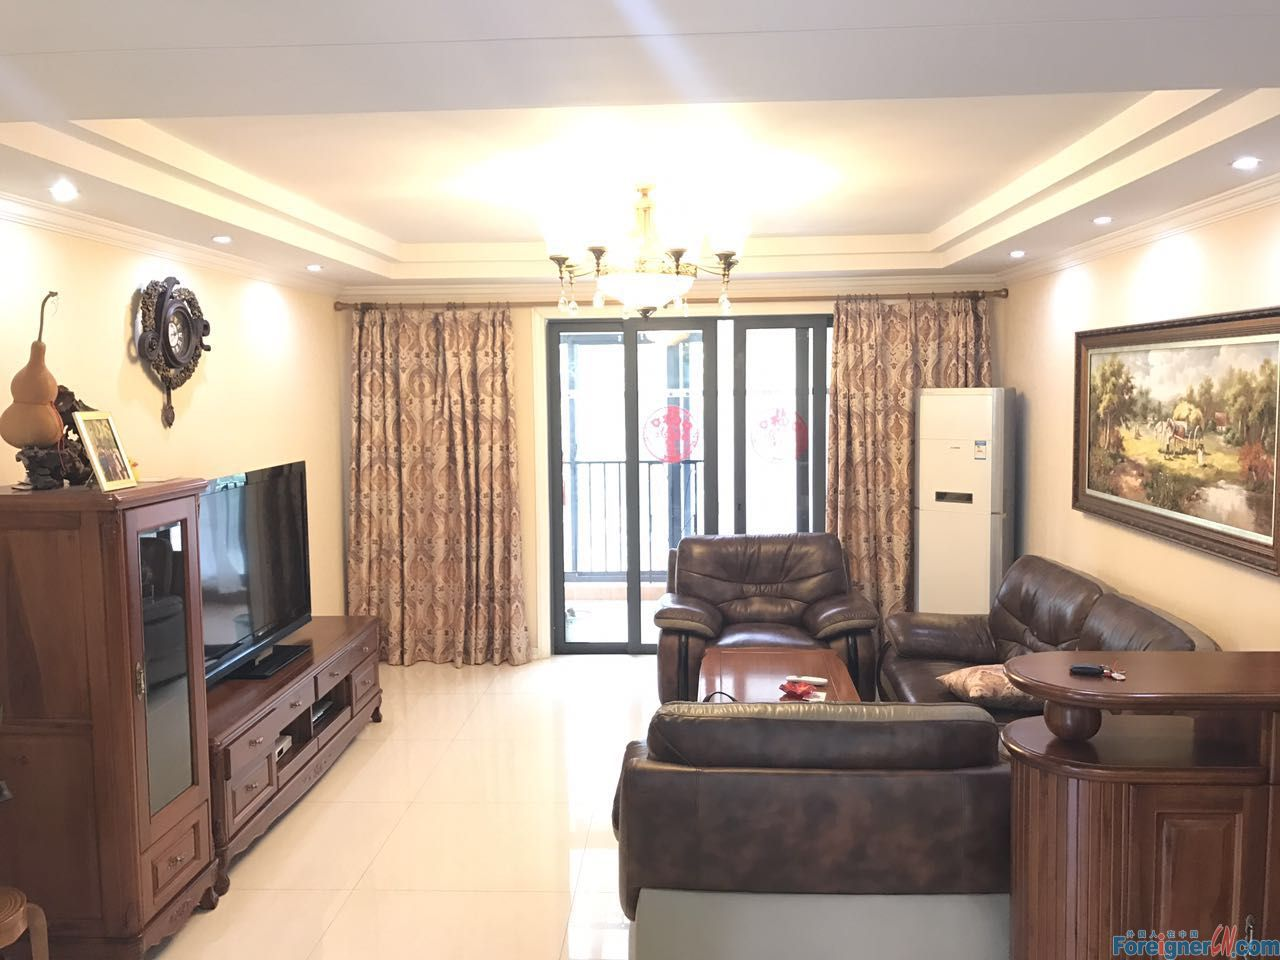 Times square, floor heating 4rooms, very nice furniture, good condition, mature community